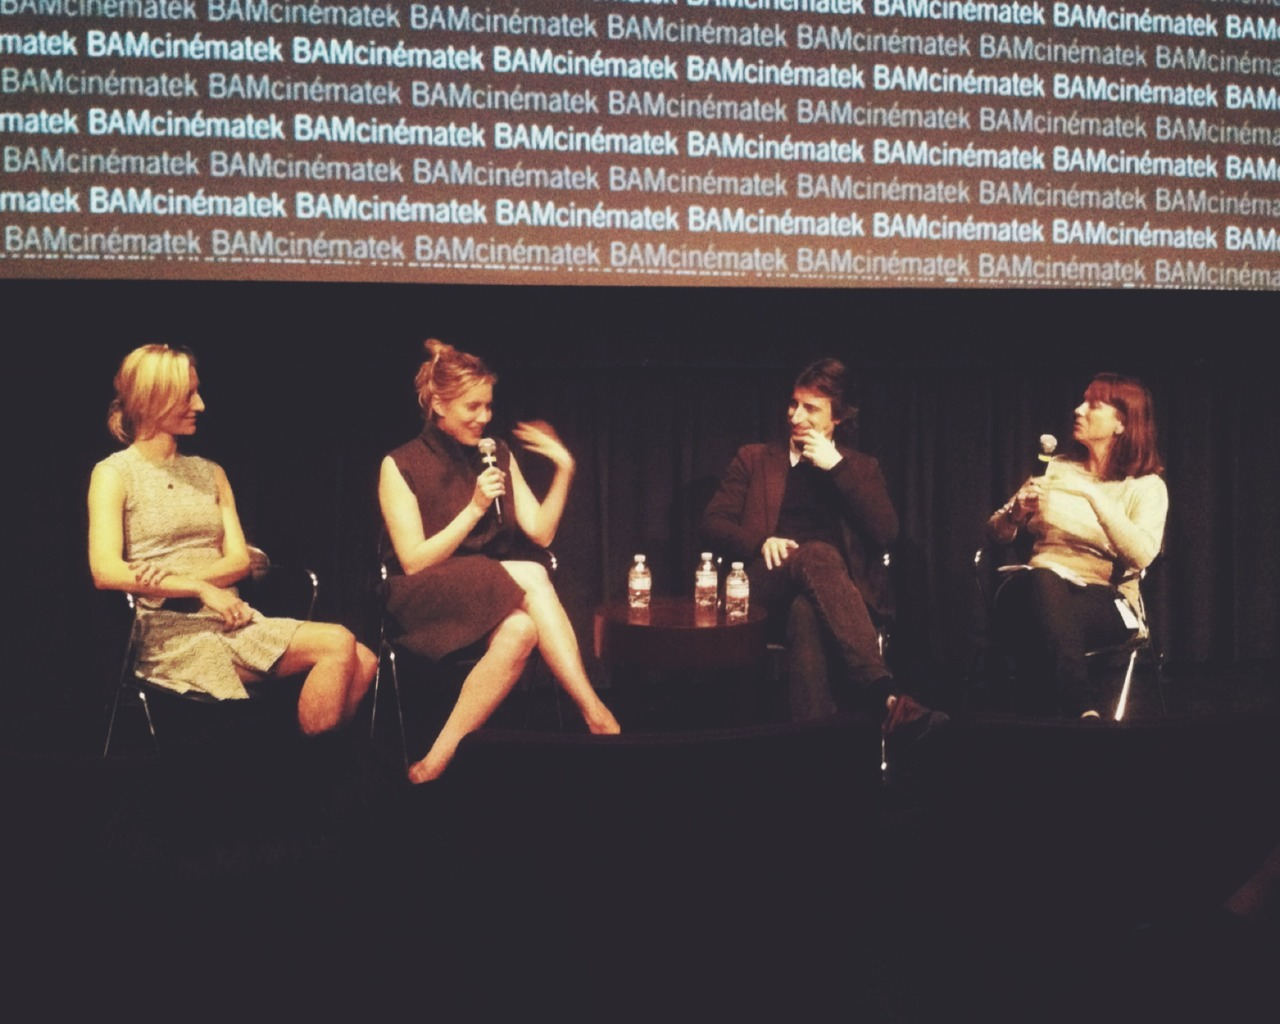 Mickey Sumner, Greta Gerwig, and Noah Baumbach  At Bam Cinematek in Brooklyn